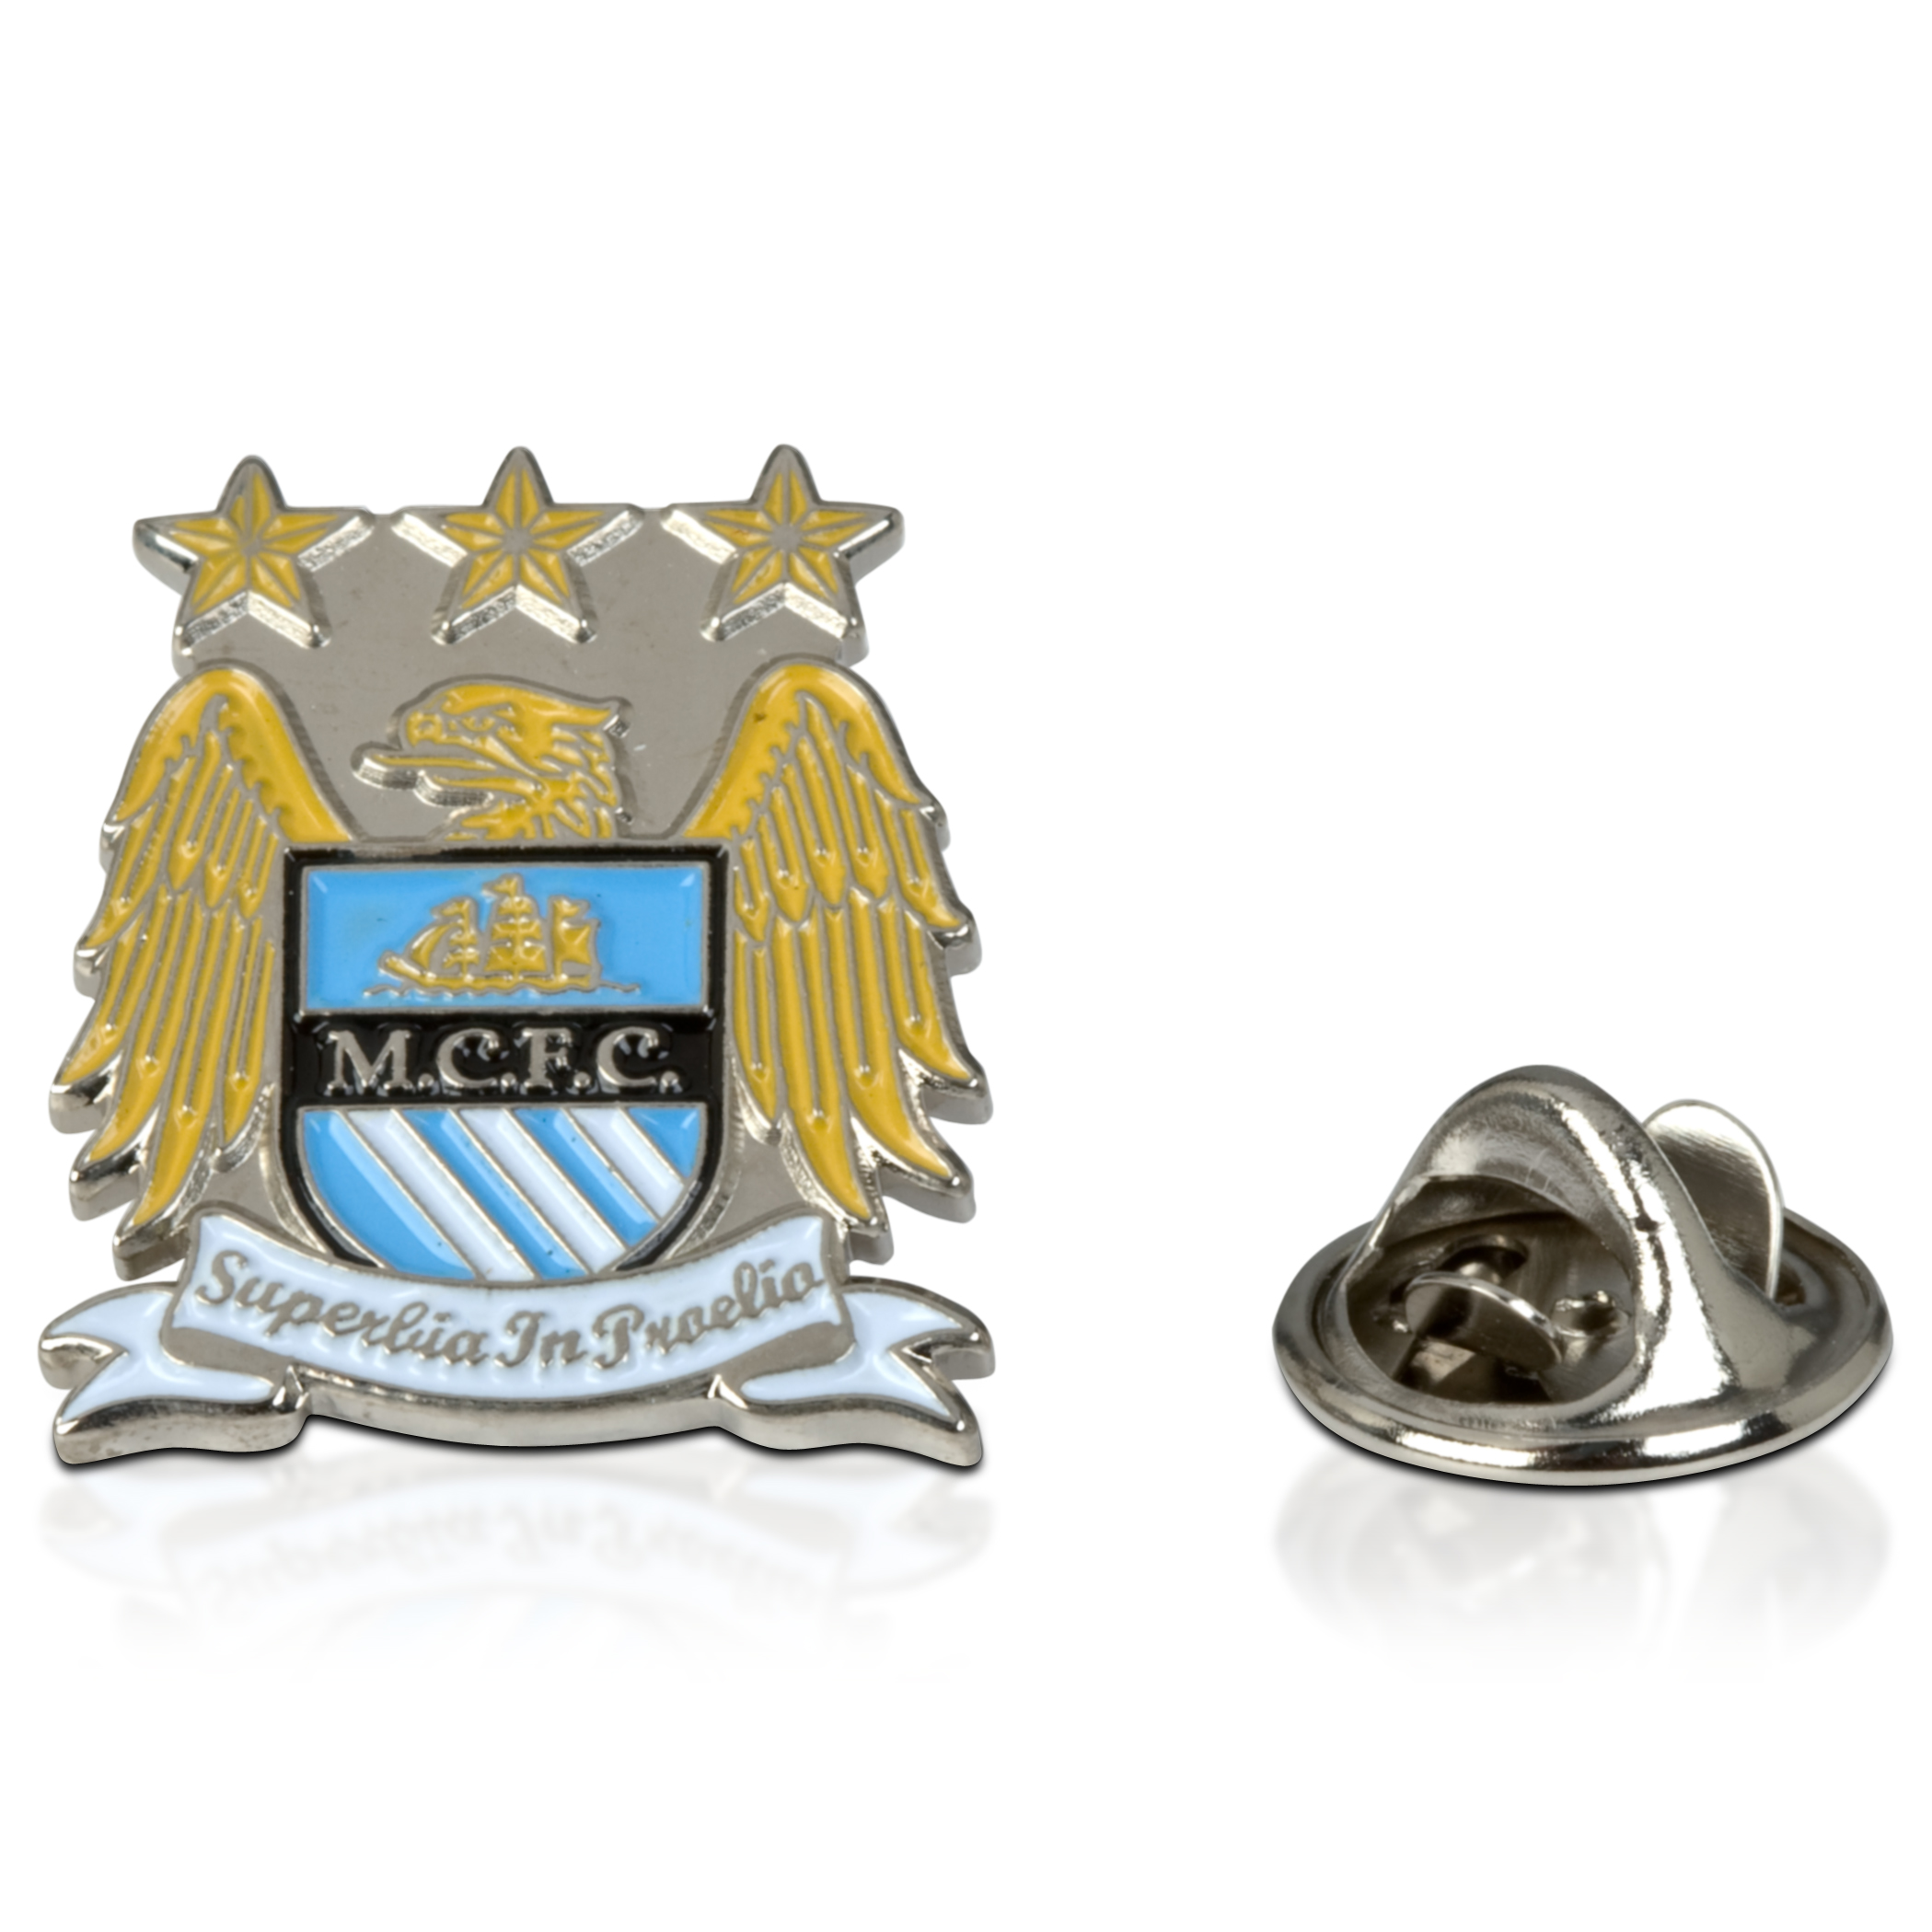 Manchester City Colour Crest Badge